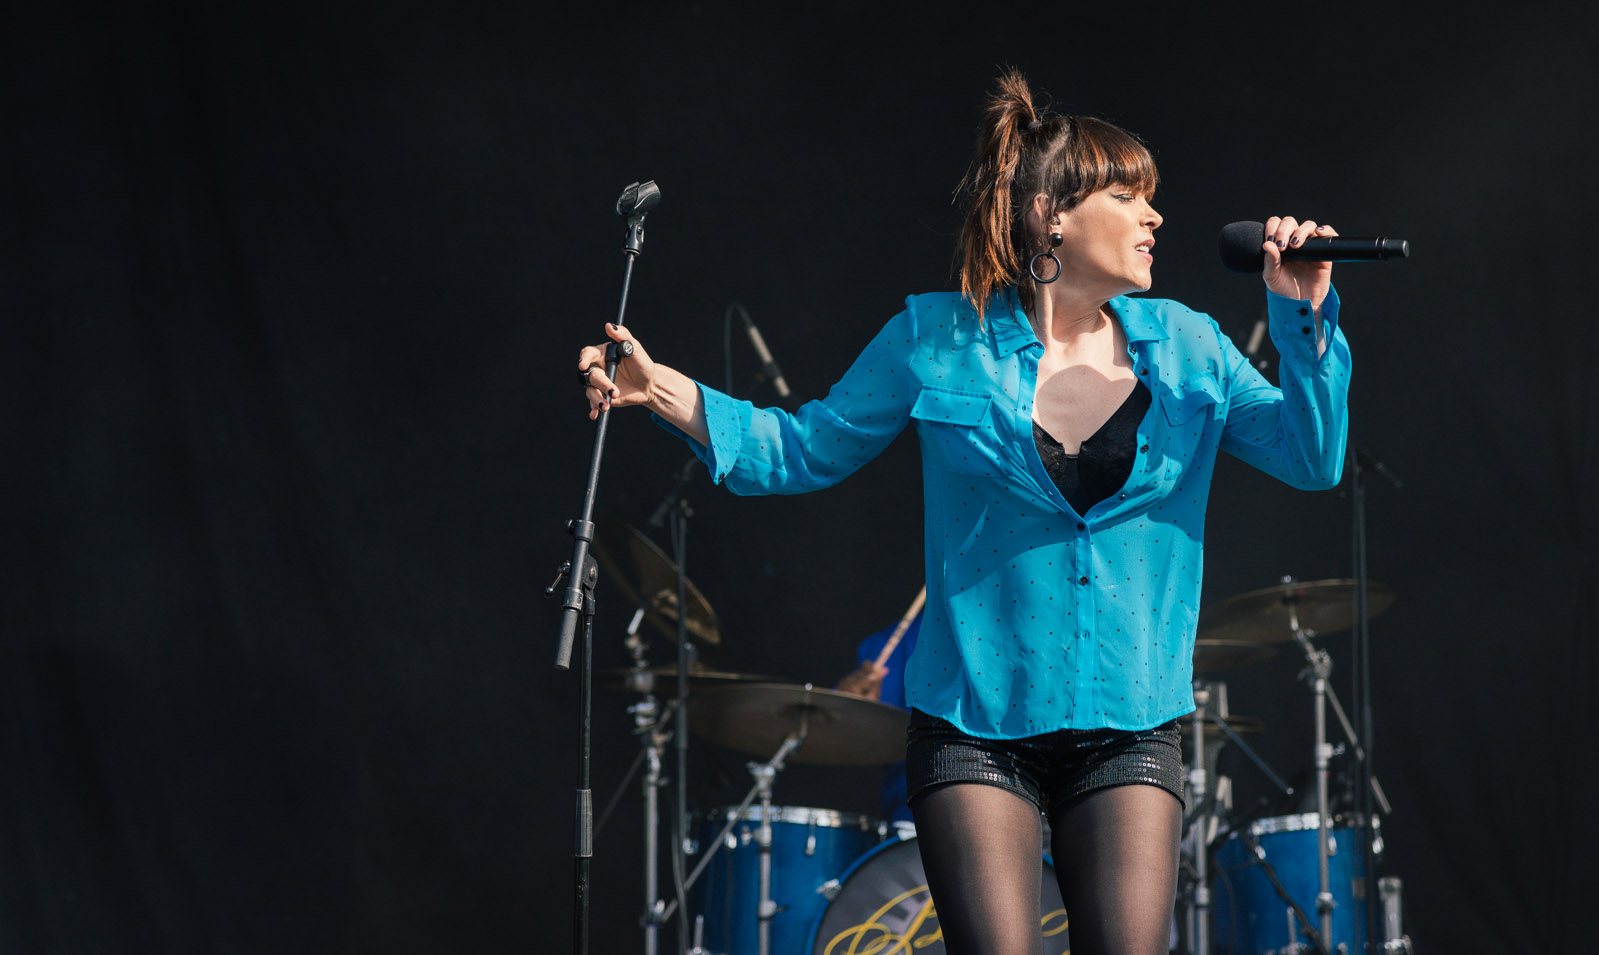 Beth Hart Wiki Top file:beth hart performing at odderøya live 2013 - wikimedia